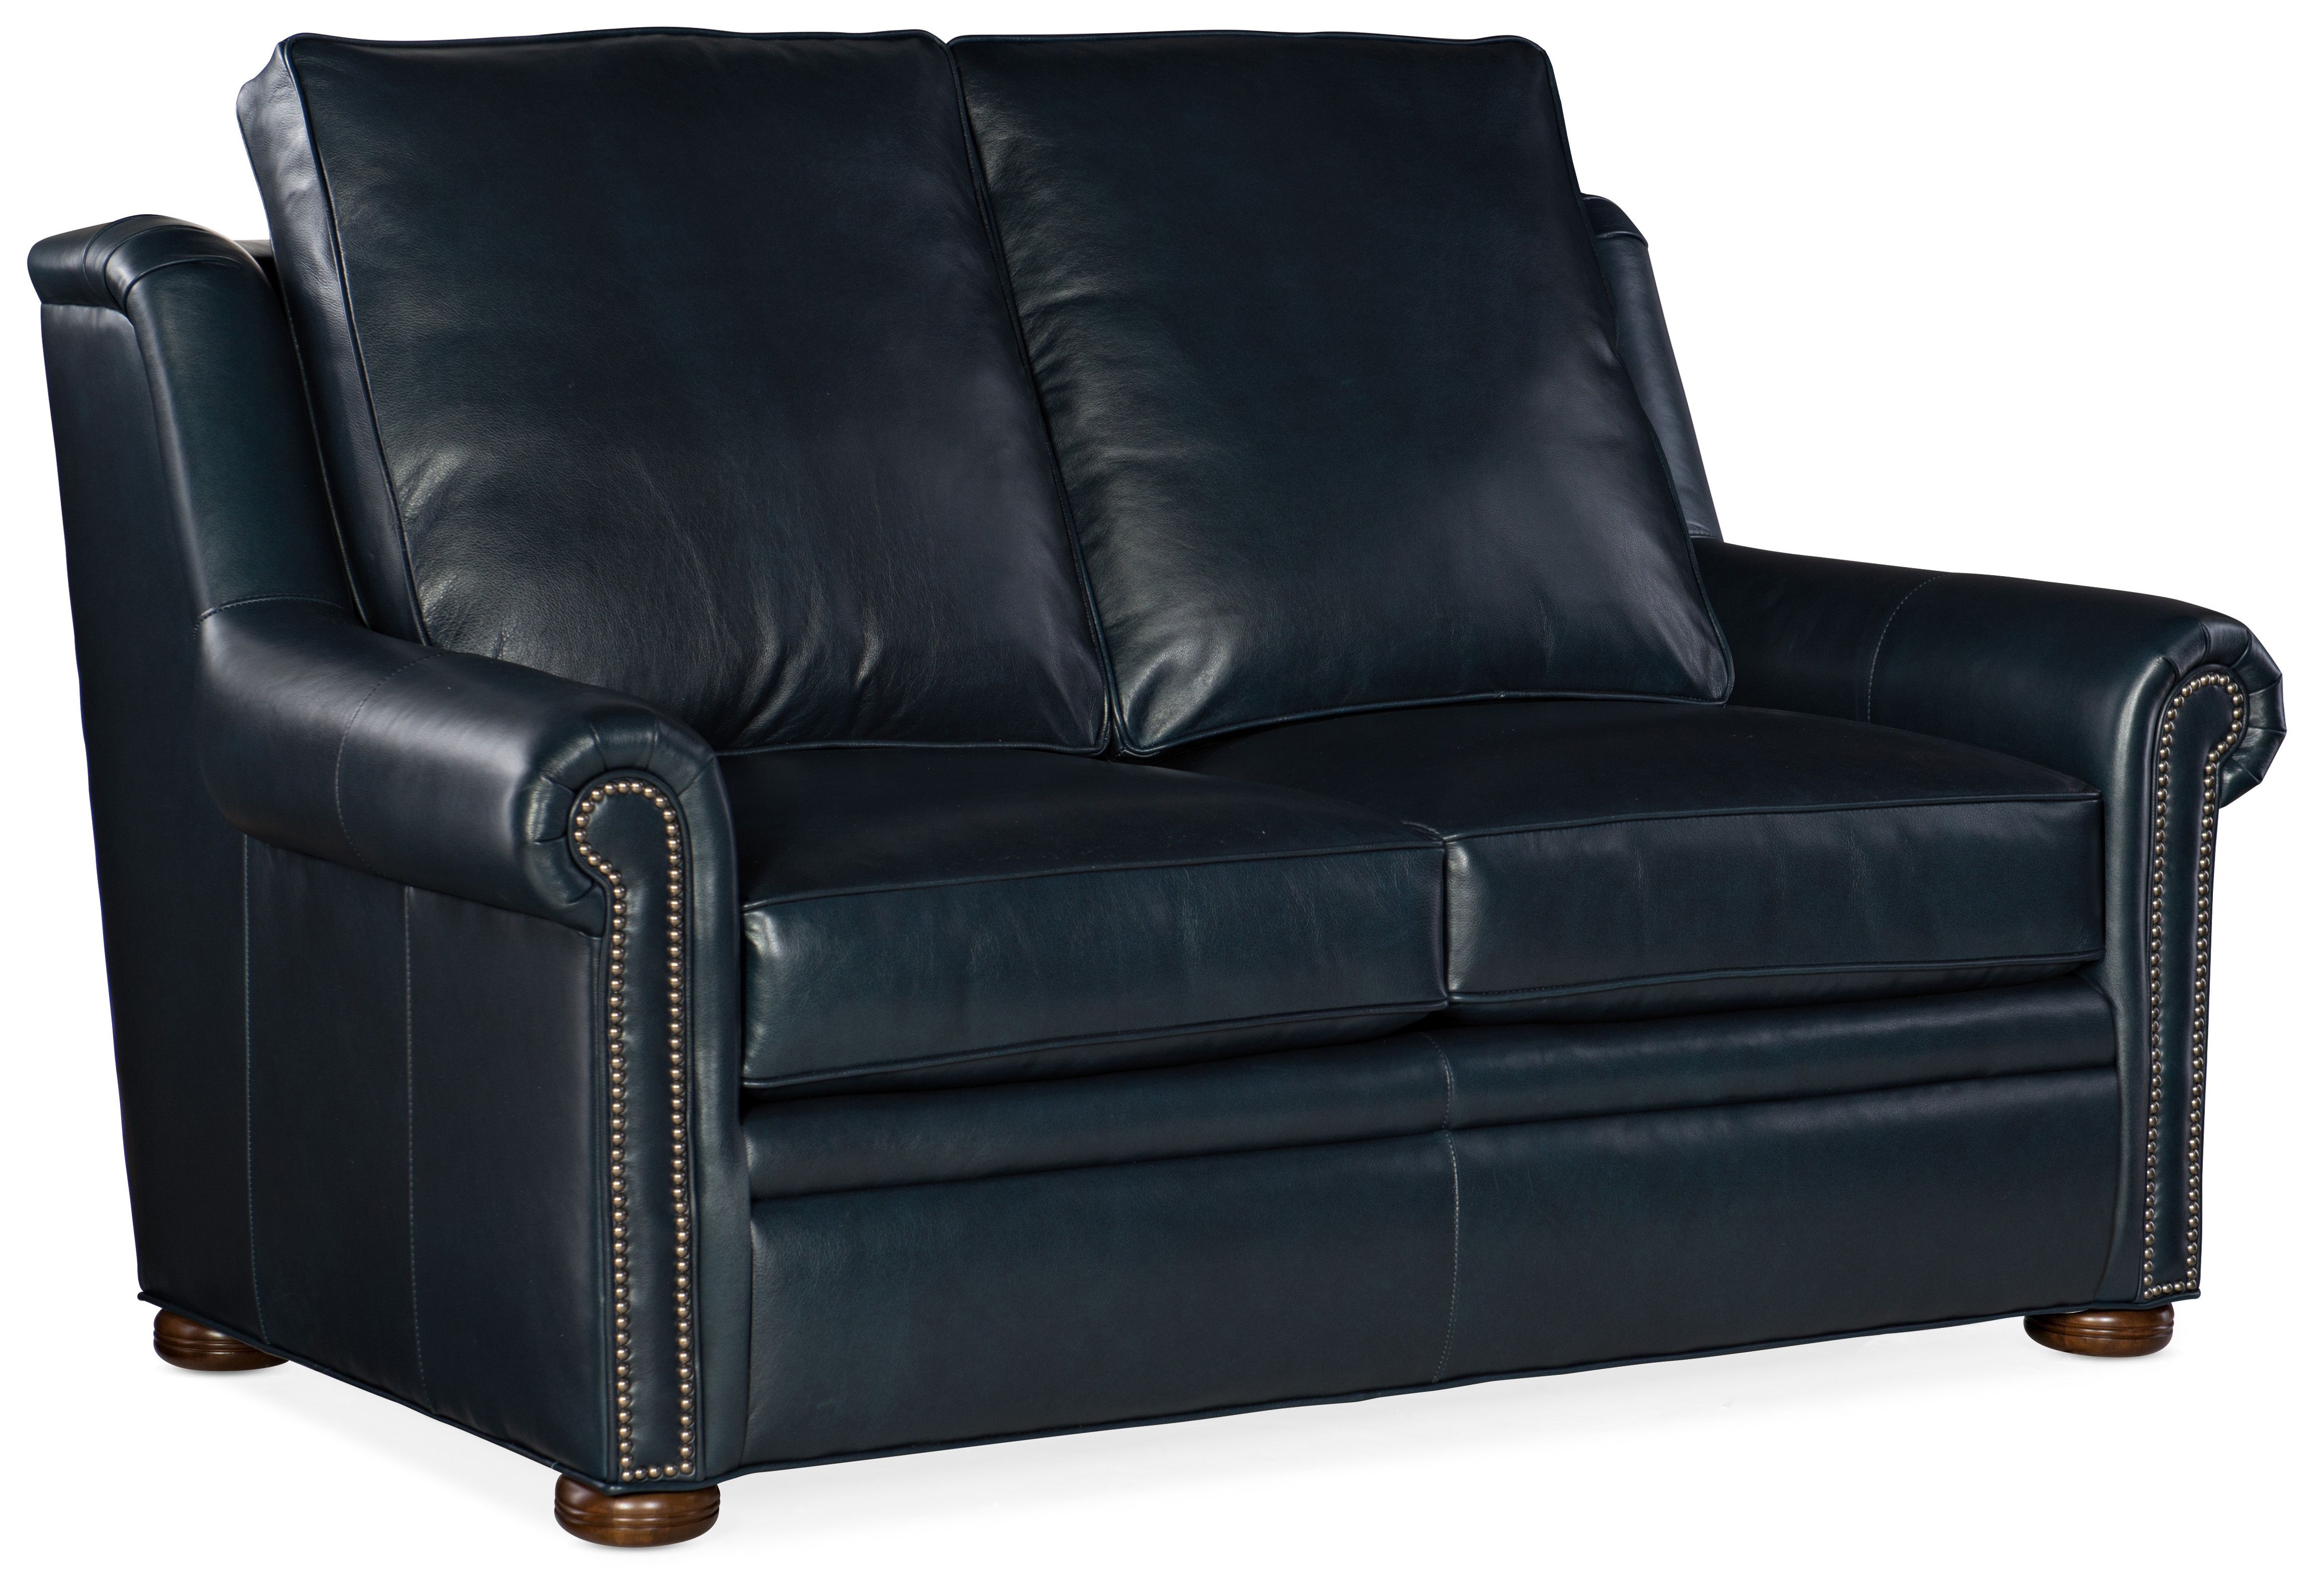 Reece Stationary Loveseat by Bradington Young at Sprintz Furniture